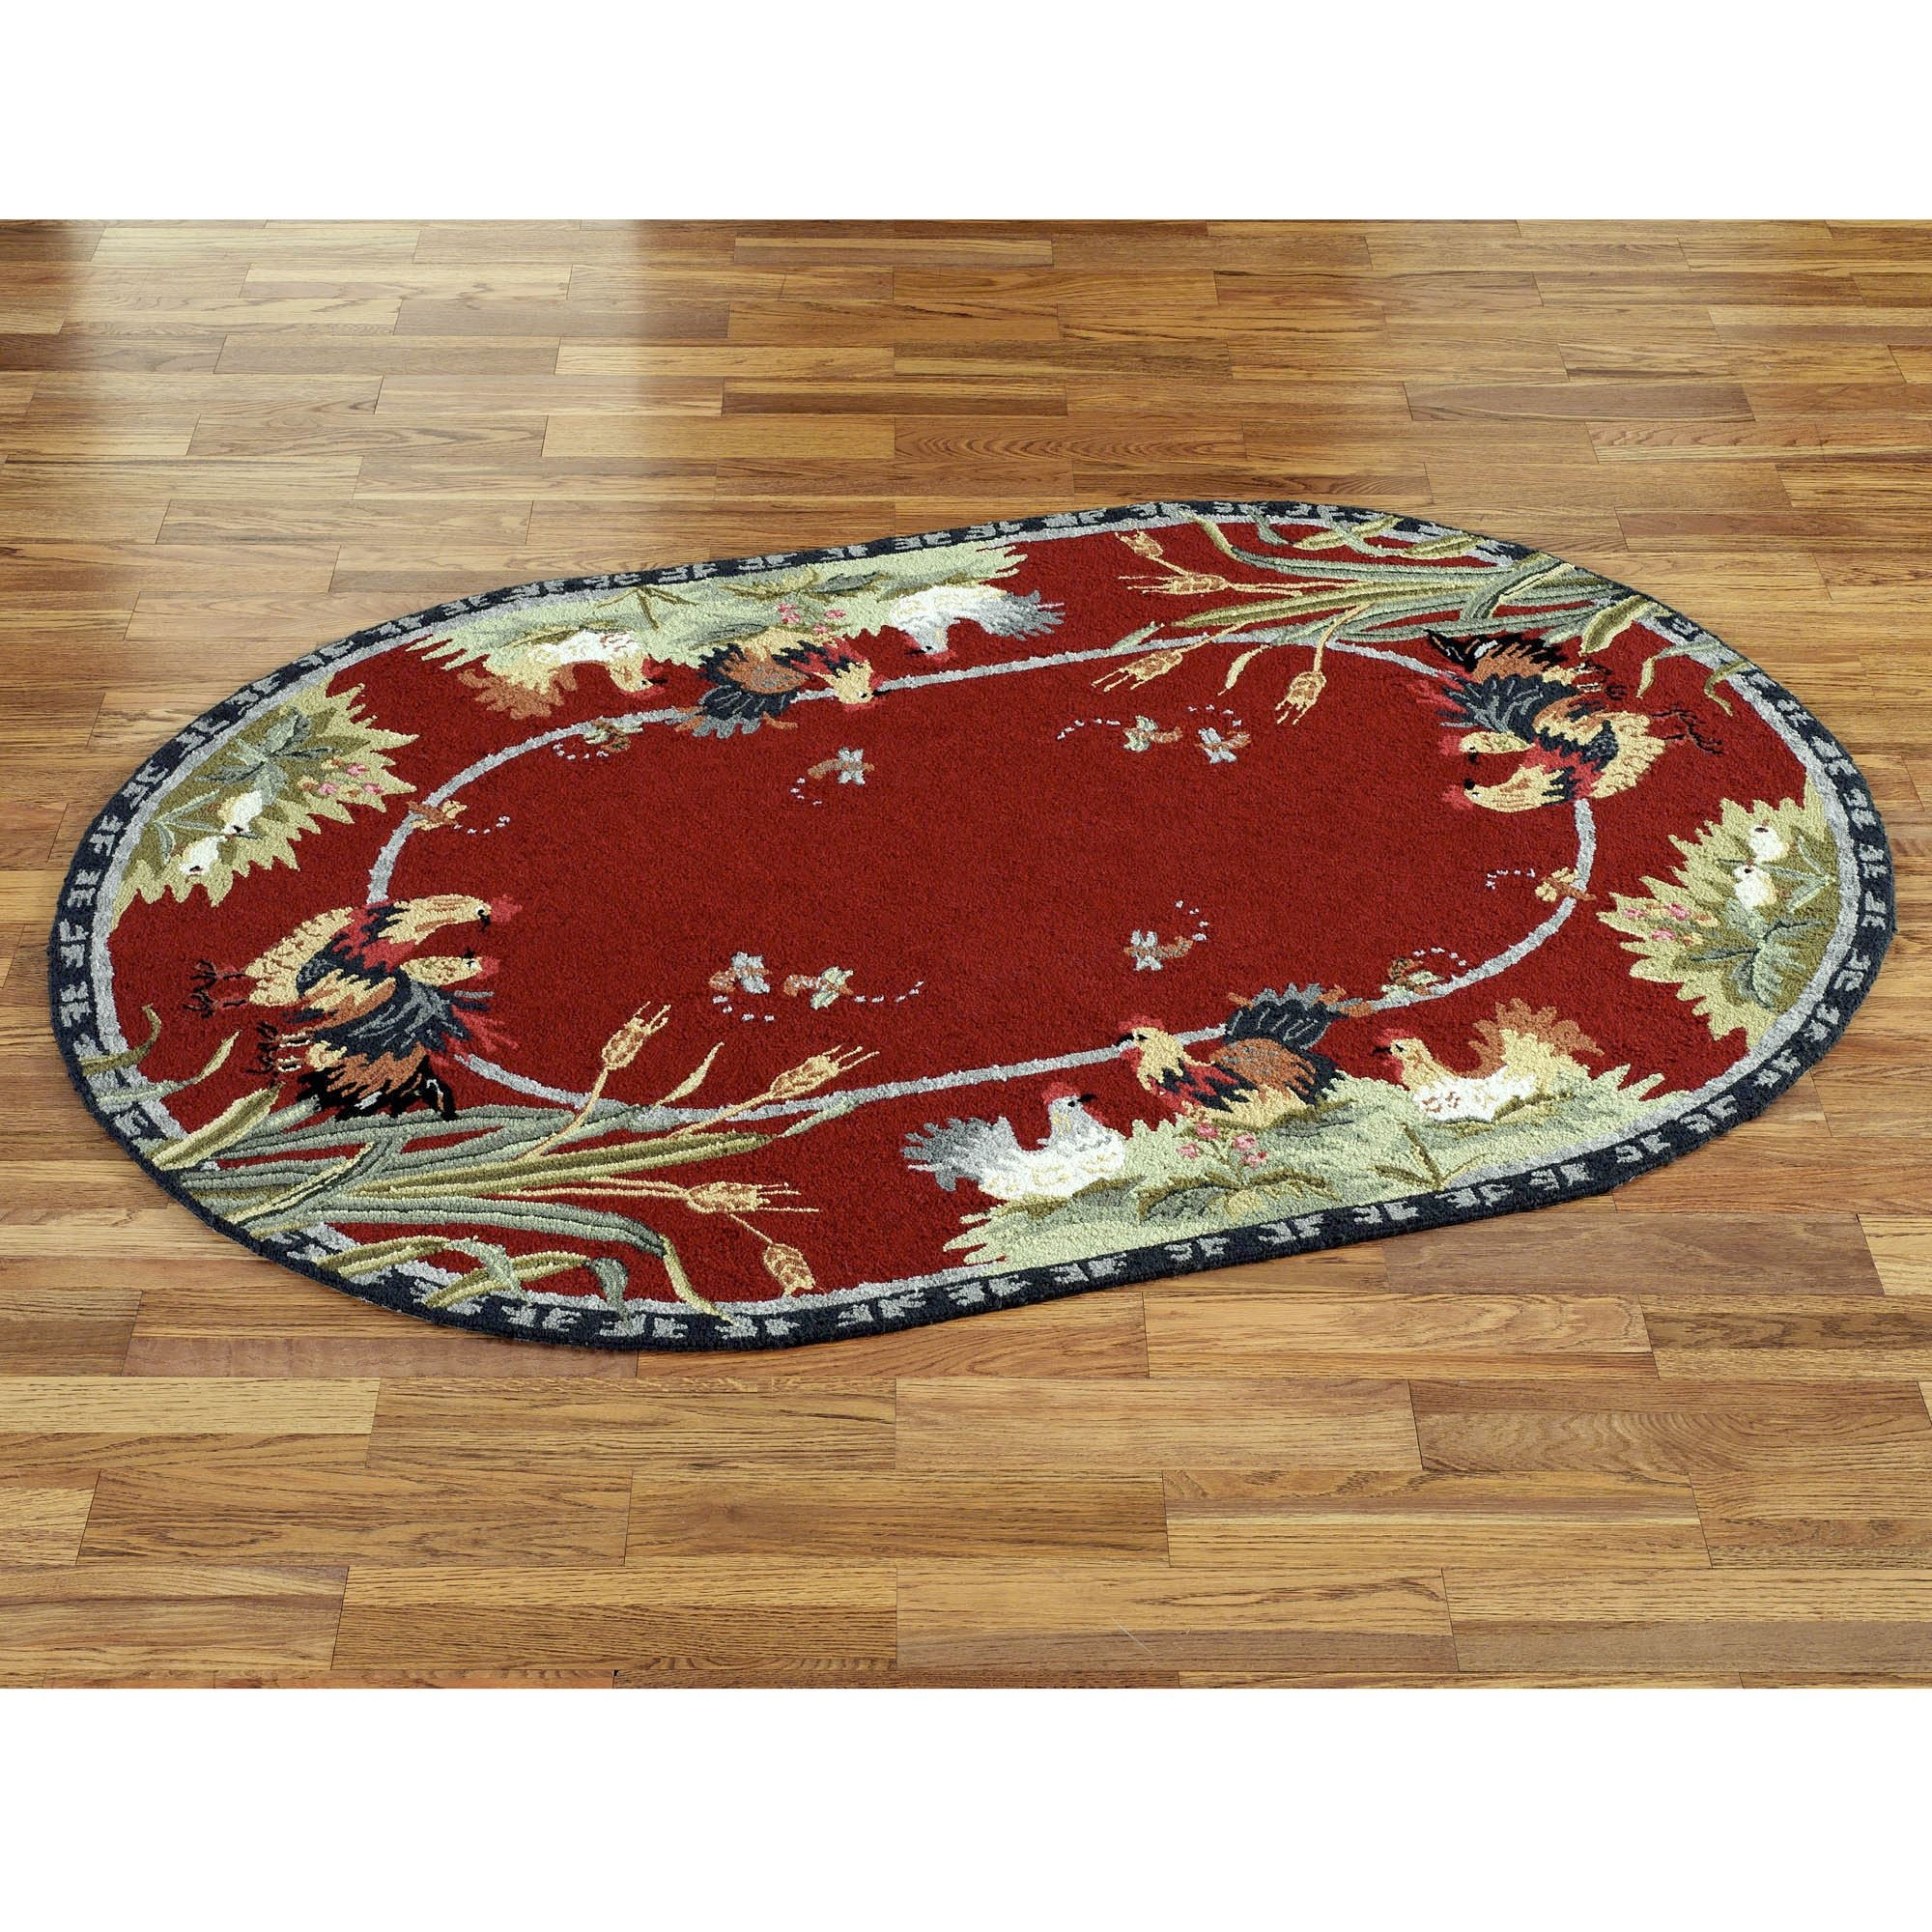 Rooster And Hens Oval Rugs Within Oval Rugs (Image 8 of 15)